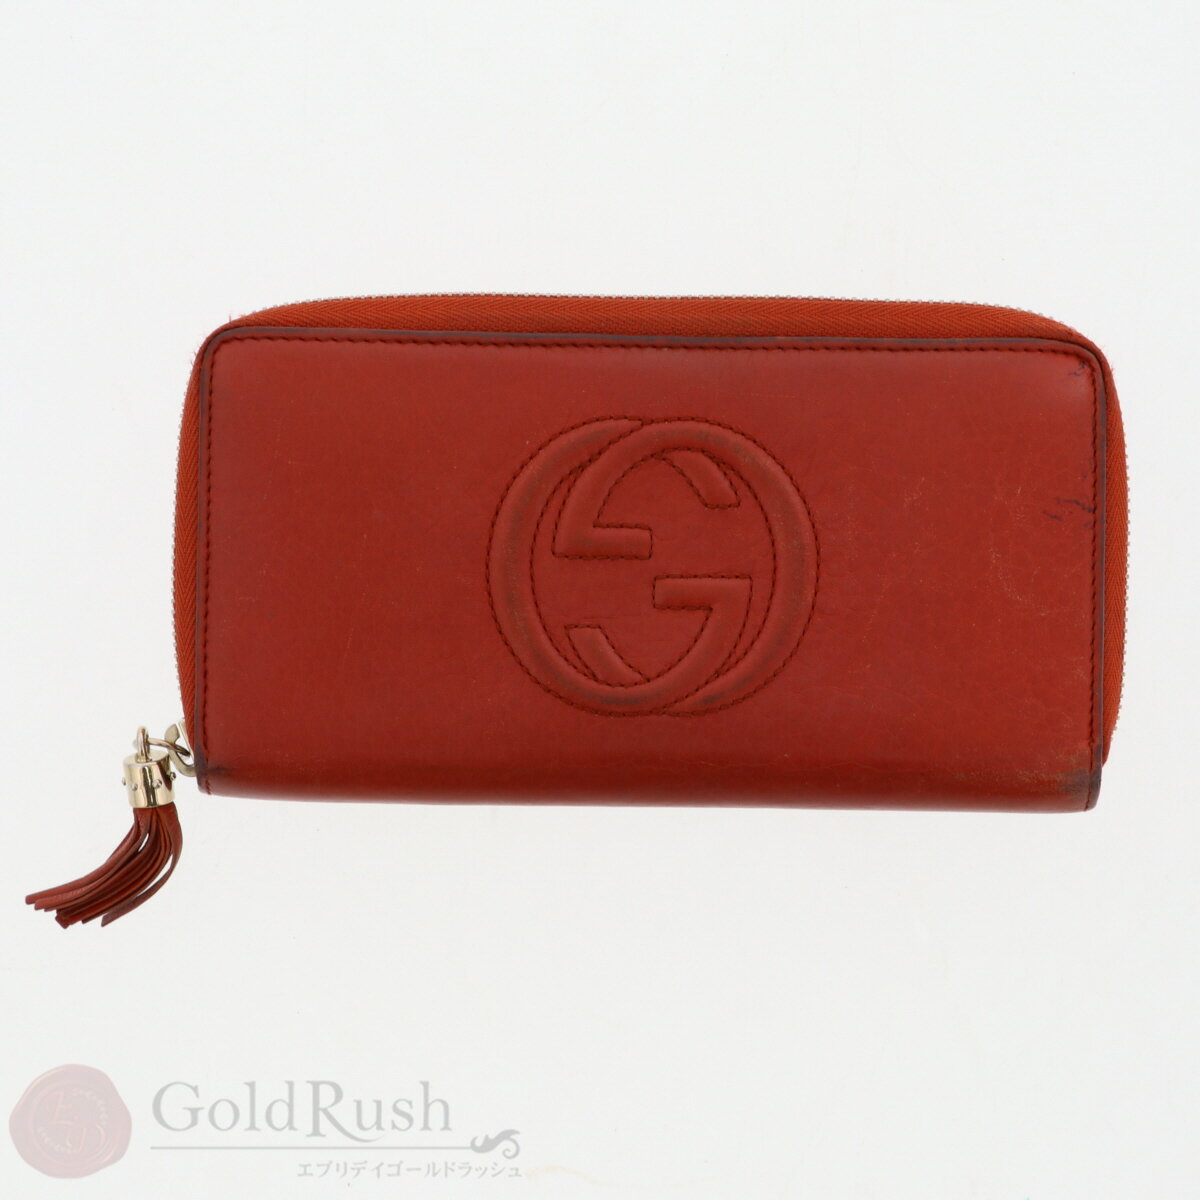 8cd21f6d767e Gucci 財布 オレンジ   Stanford Center for Opportunity Policy in ...